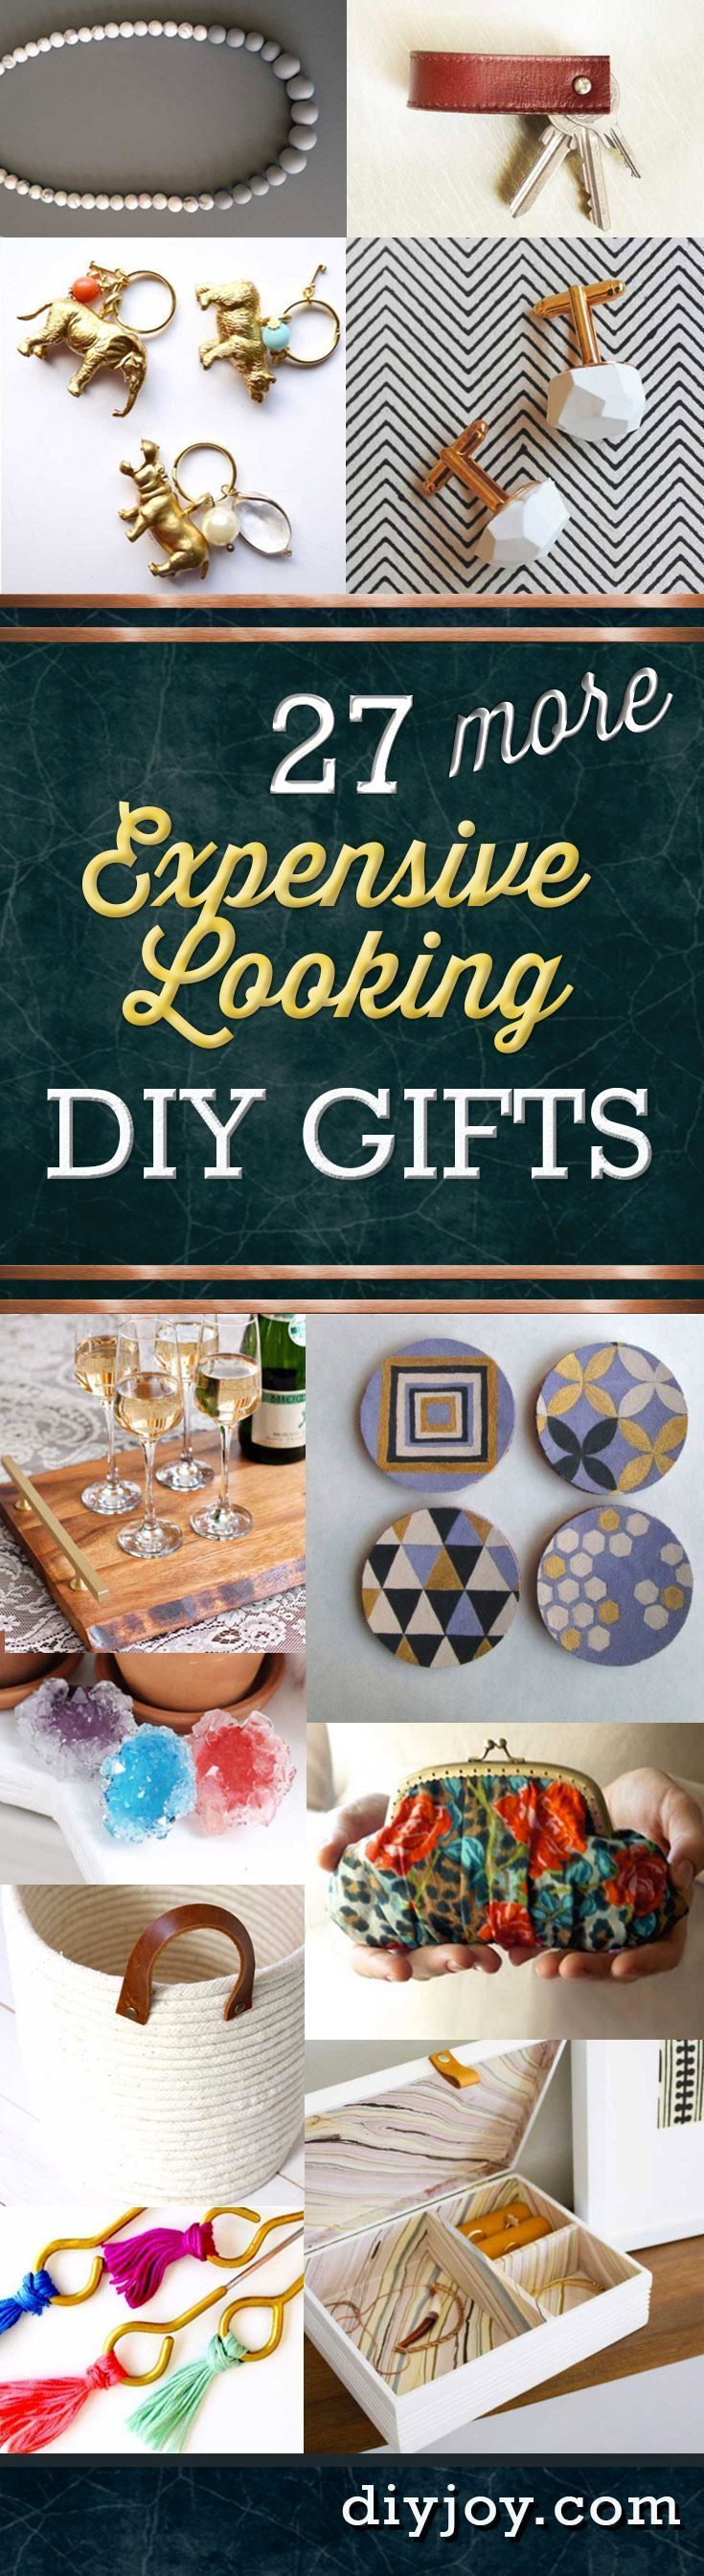 27 MORE Expensive Looking Inexpensive Gifts Gift crafts